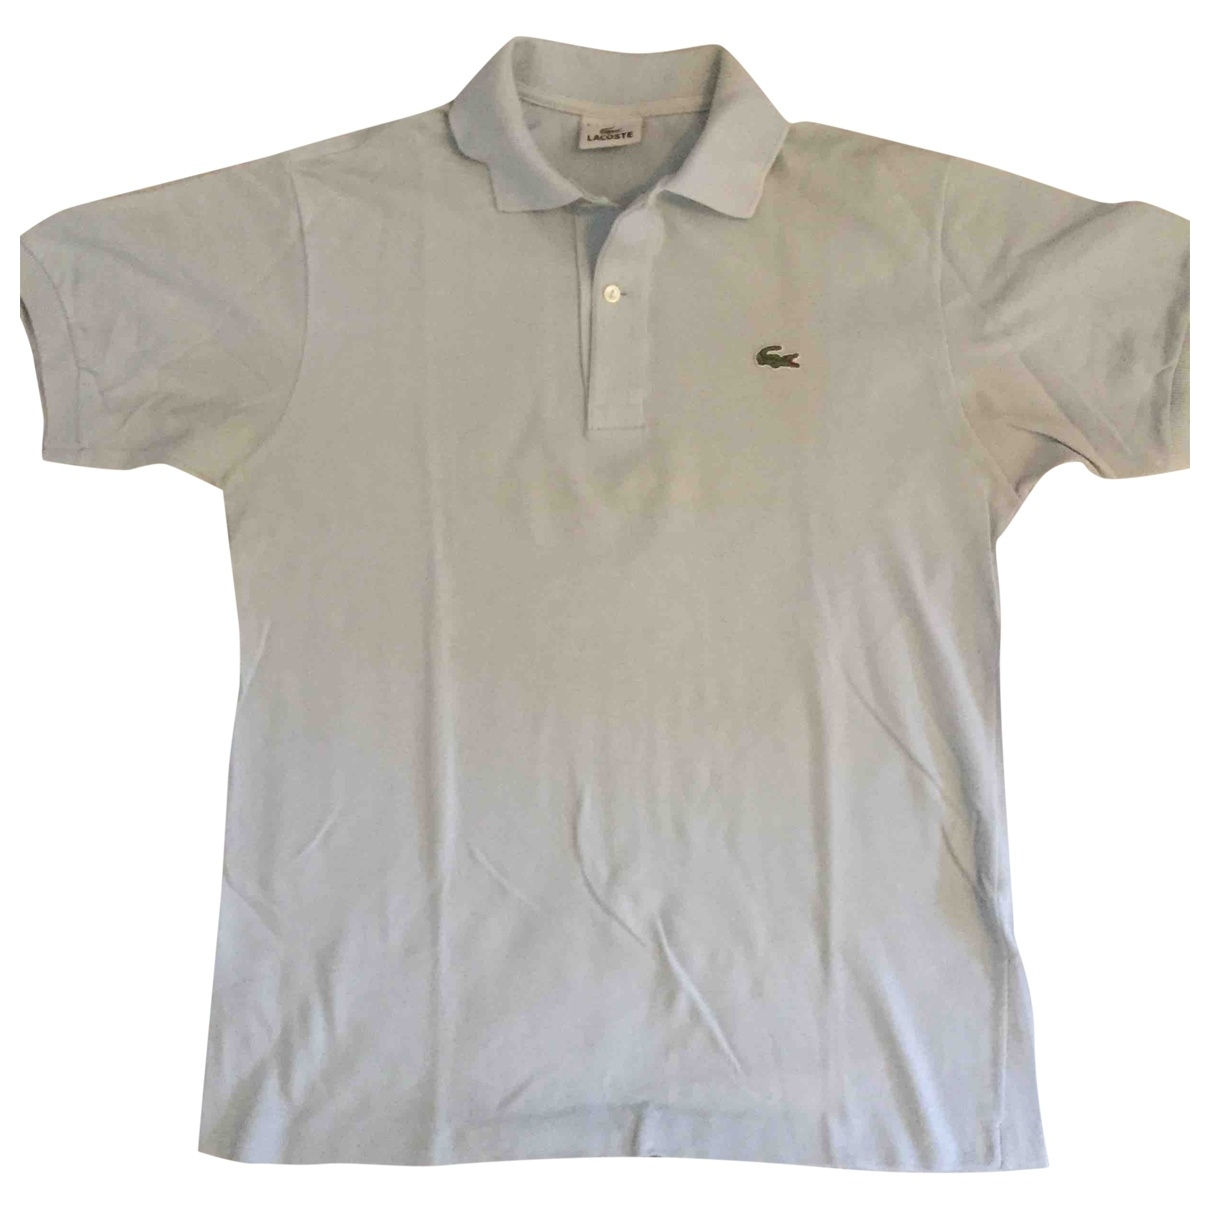 Lacoste \N Turquoise Cotton Polo shirts for Men 3 0 - 6